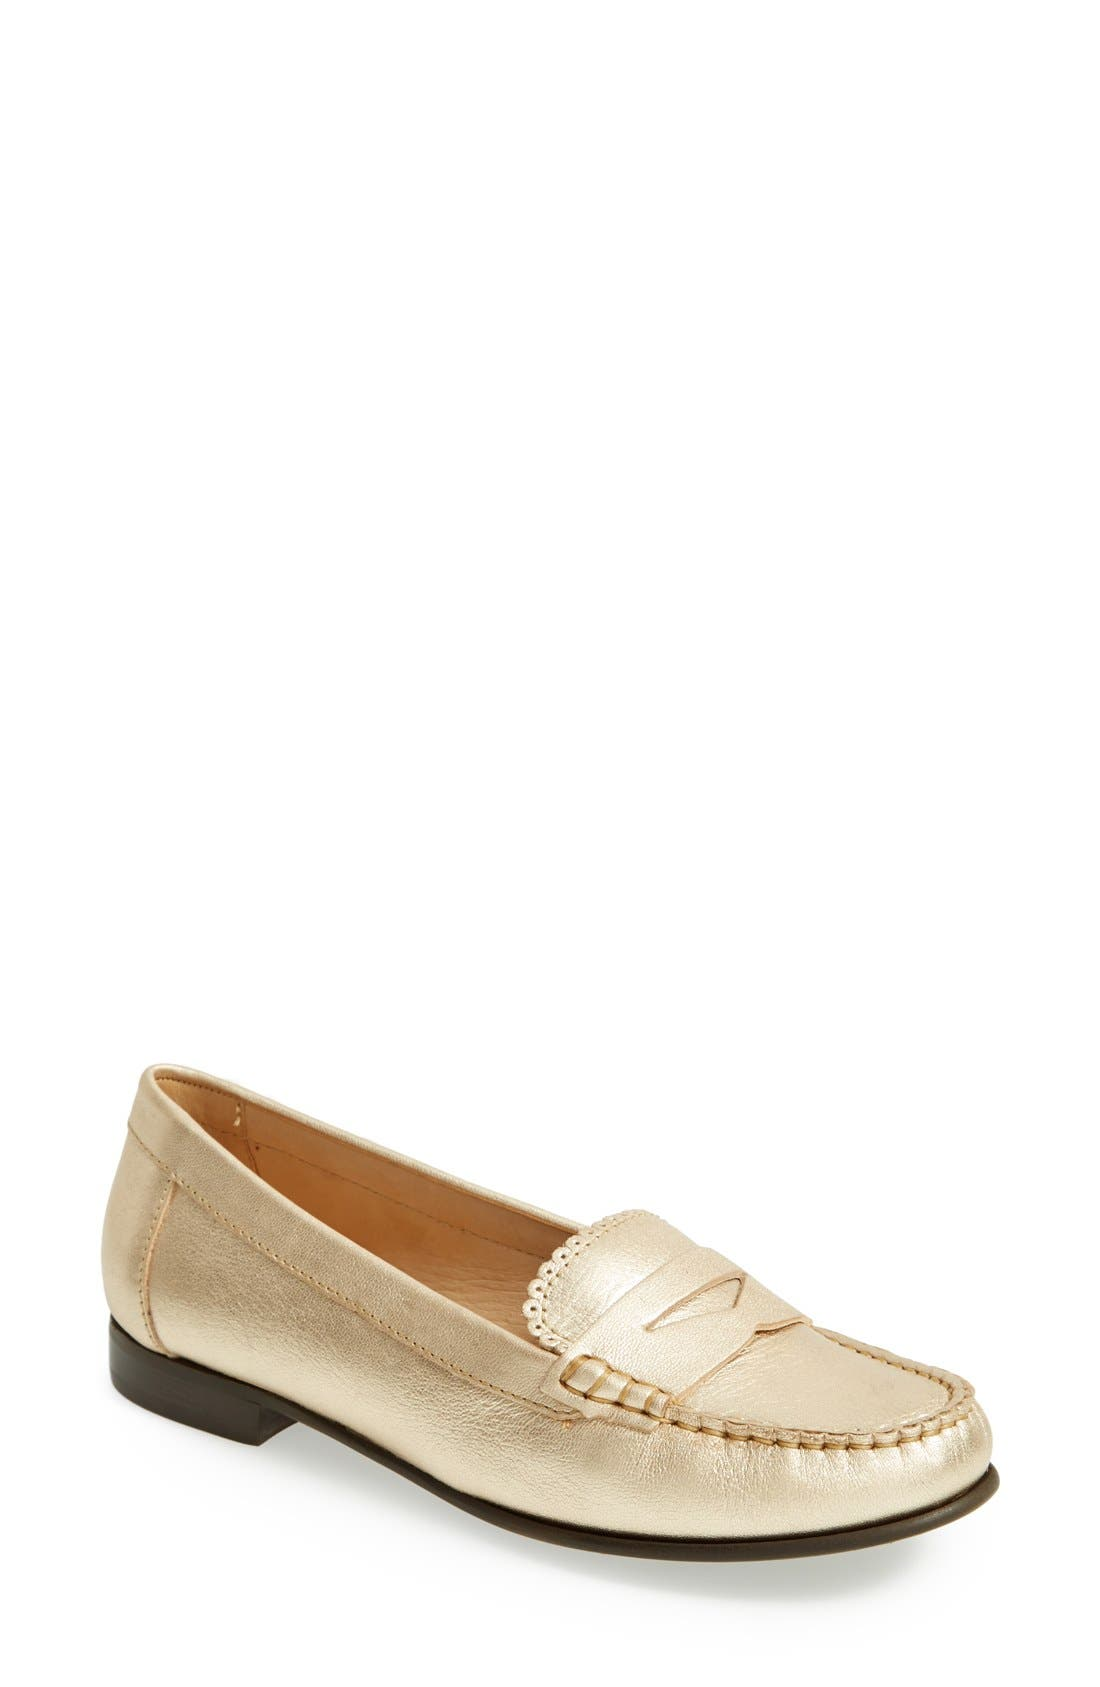 'Quinn' Leather Loafer,                             Main thumbnail 2, color,